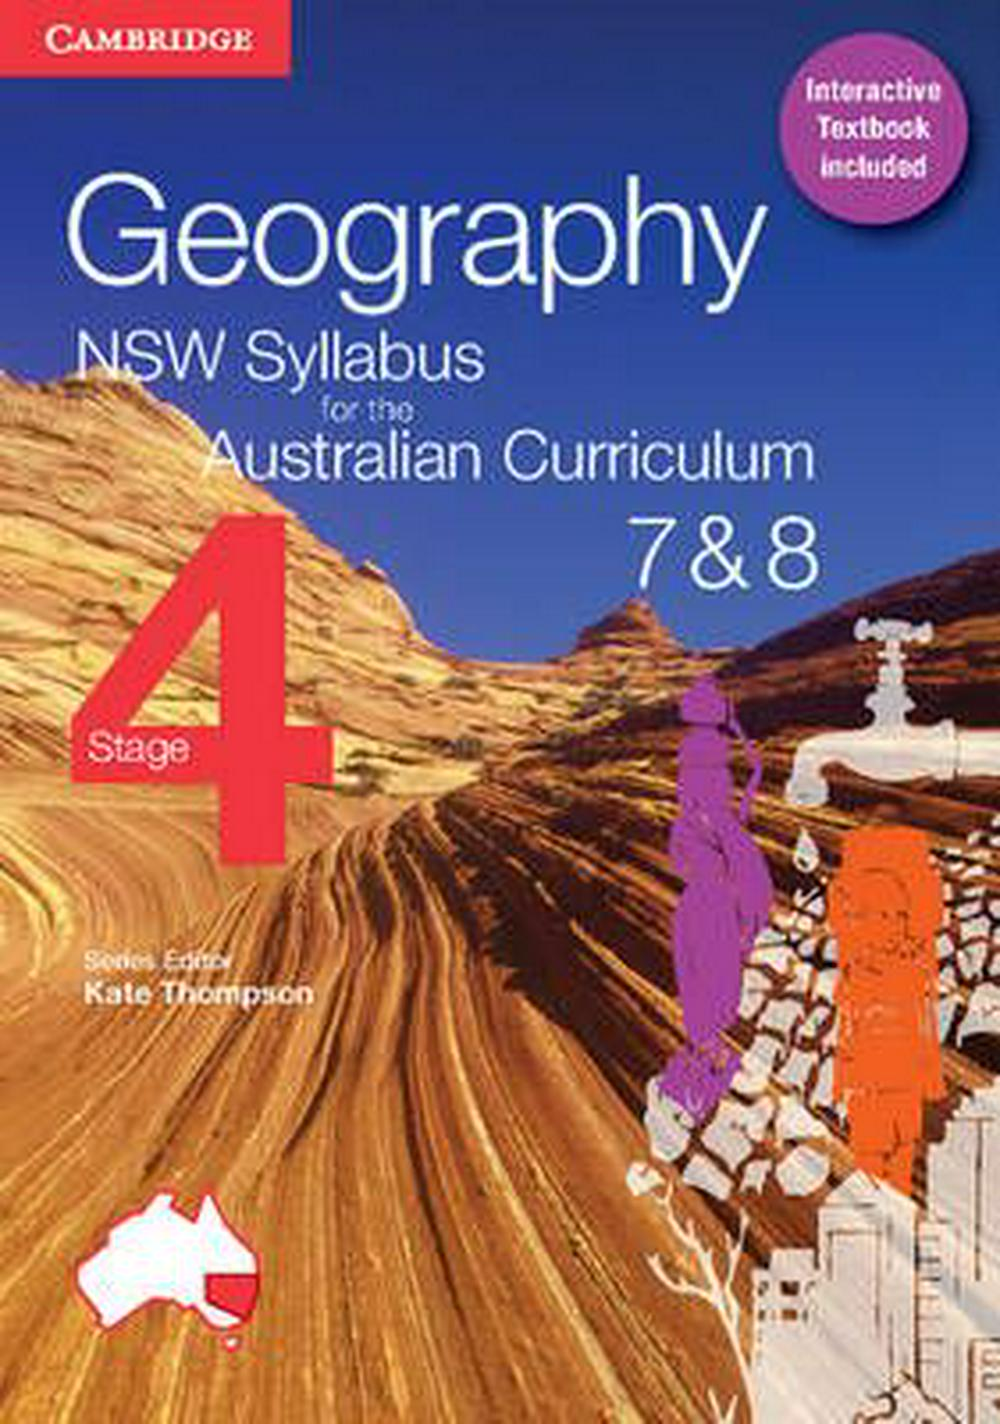 Geography NSW Syllabus for the Australian Curriculum Stage 4 Years 7 and 8 Pack (Textbook and Interactive Textbook) by Alan Boddy, ISBN: 9781316601440